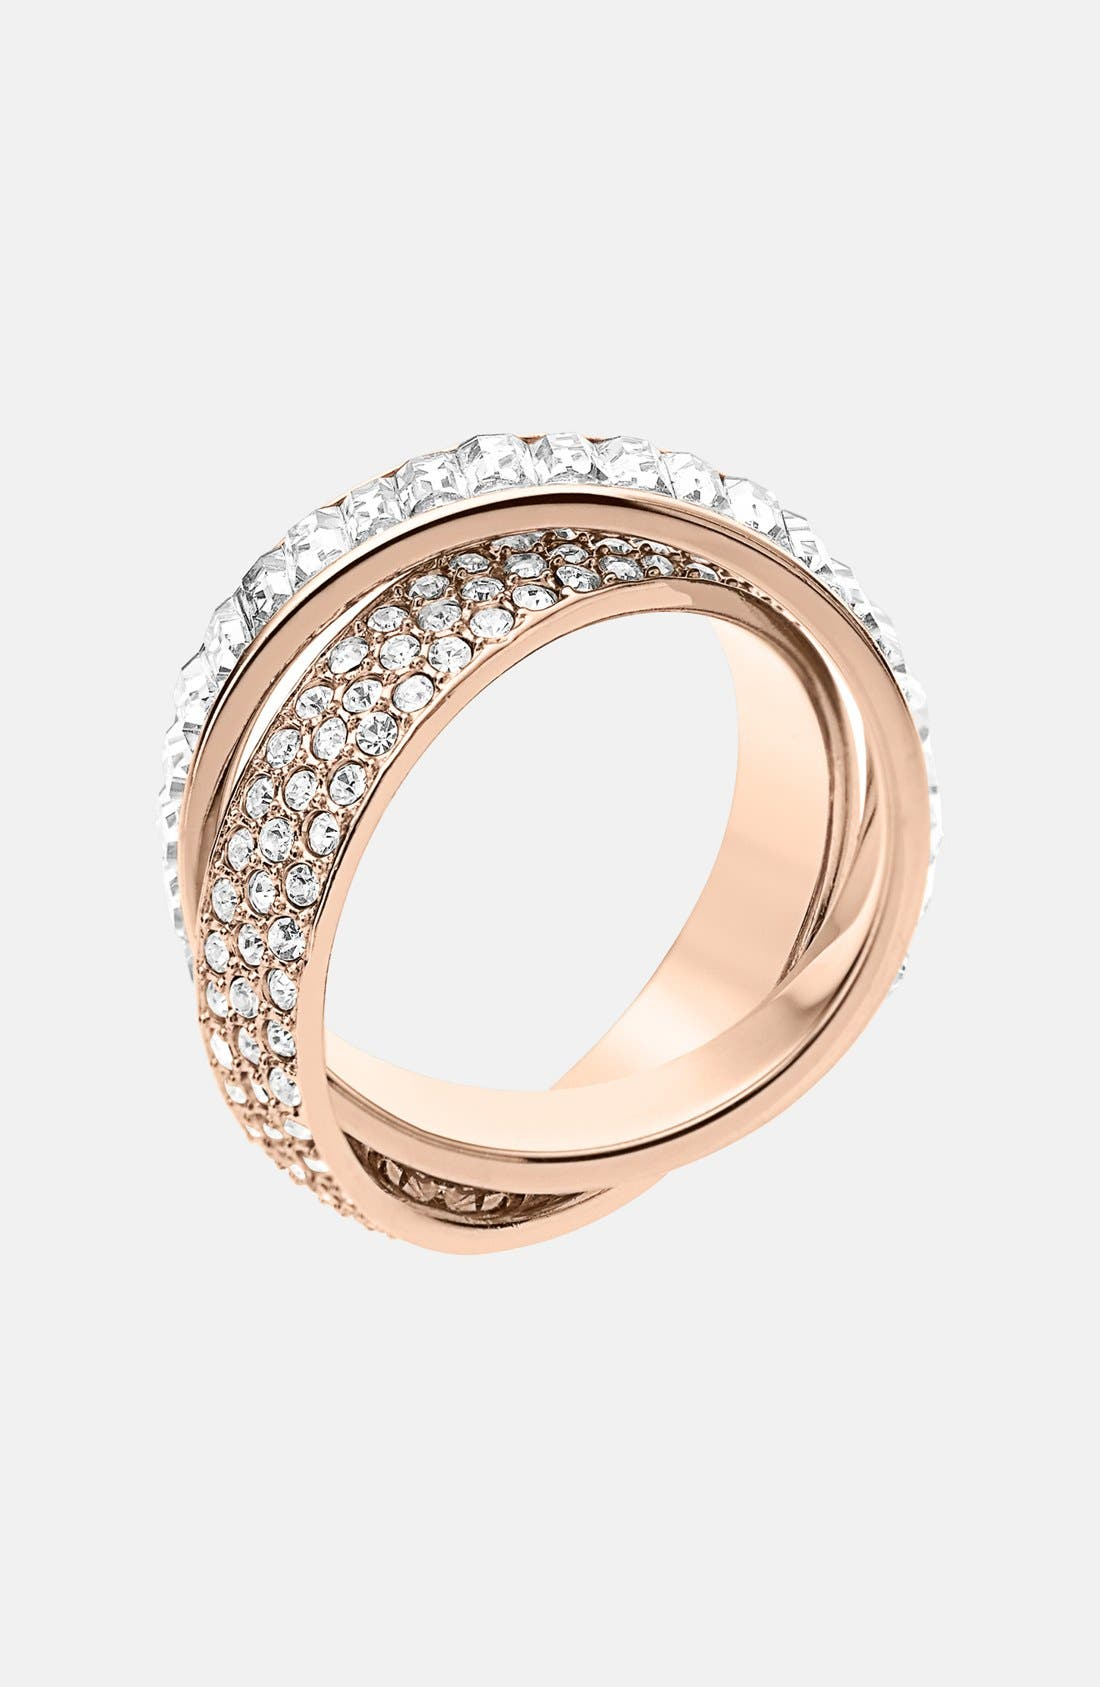 Main Image - Michael Kors 'Brilliance' Crystal Intertwined Ring